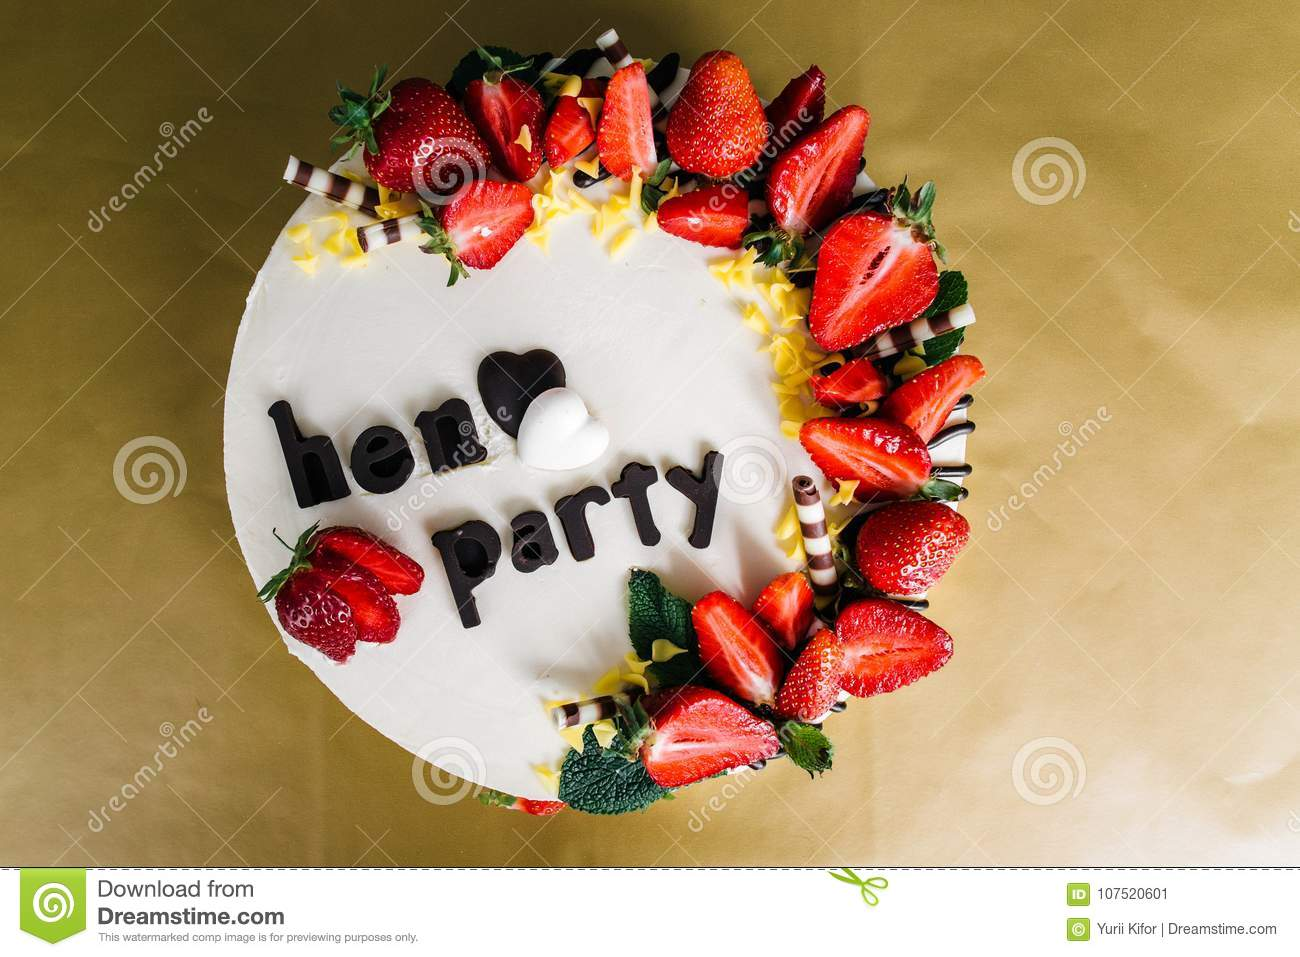 The Most Beautiful And Delicious Cake Wedding Birthday Hen Party